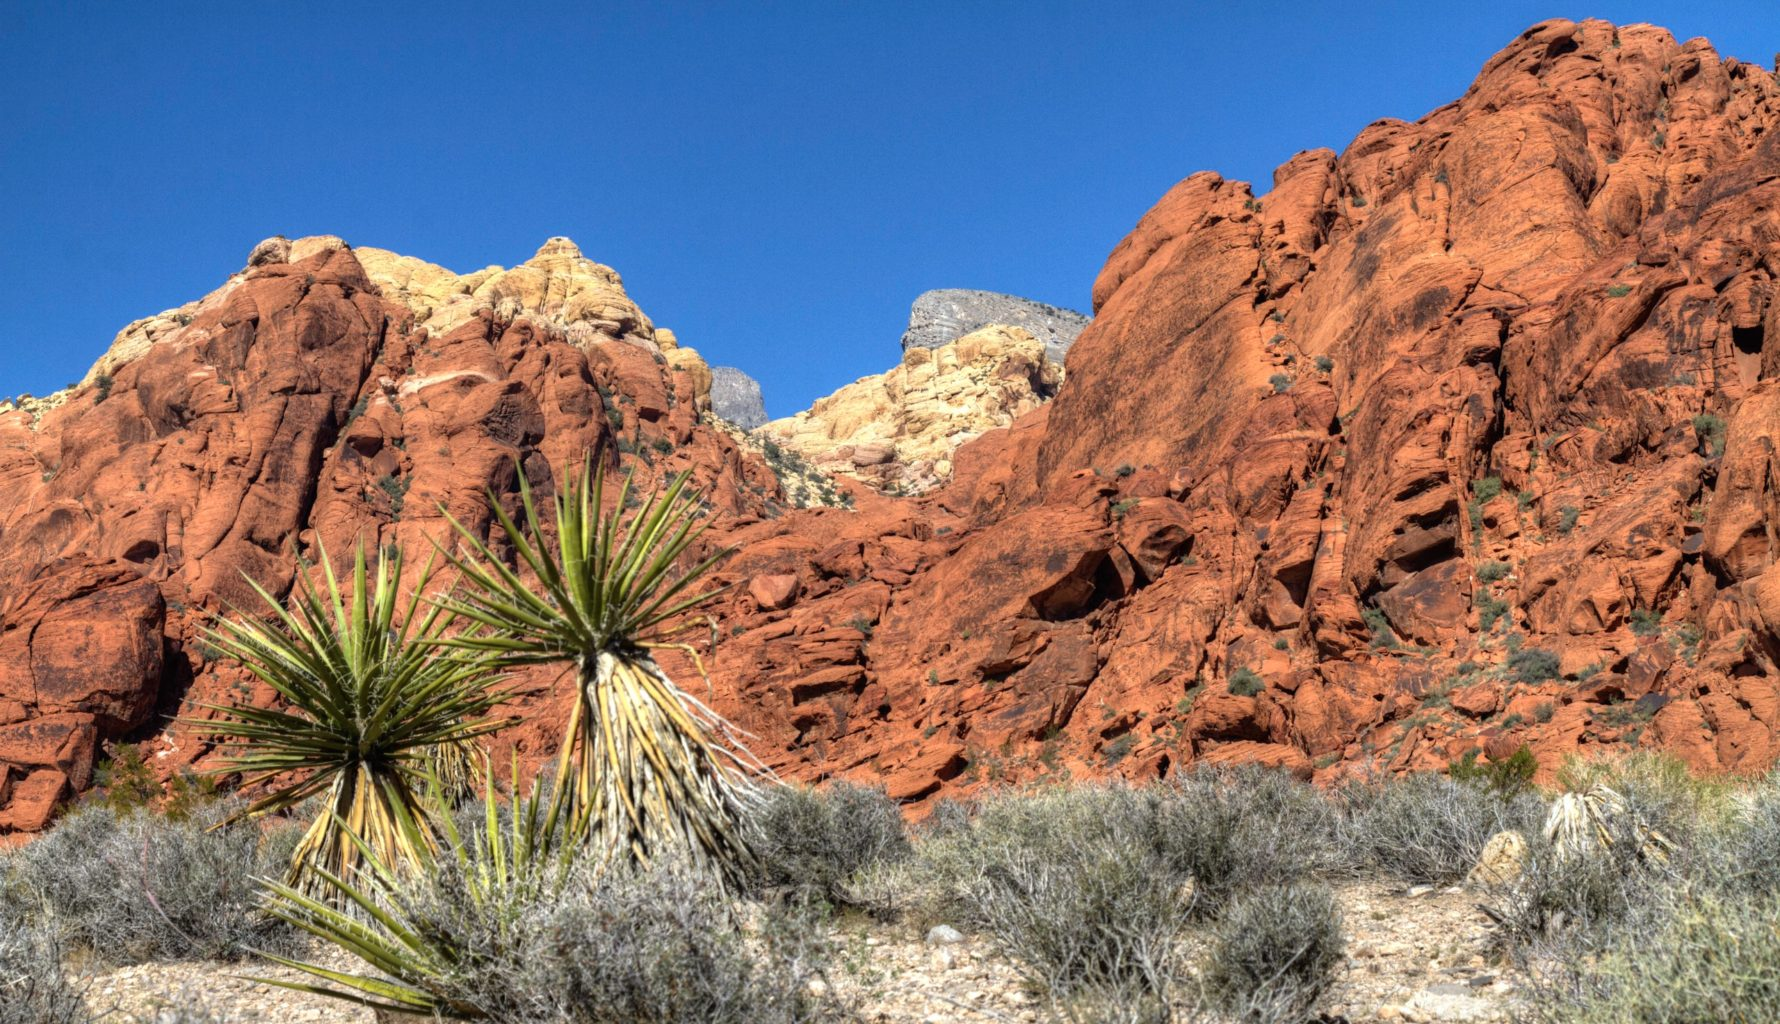 512photoz Red Rock Canyon, Nevada